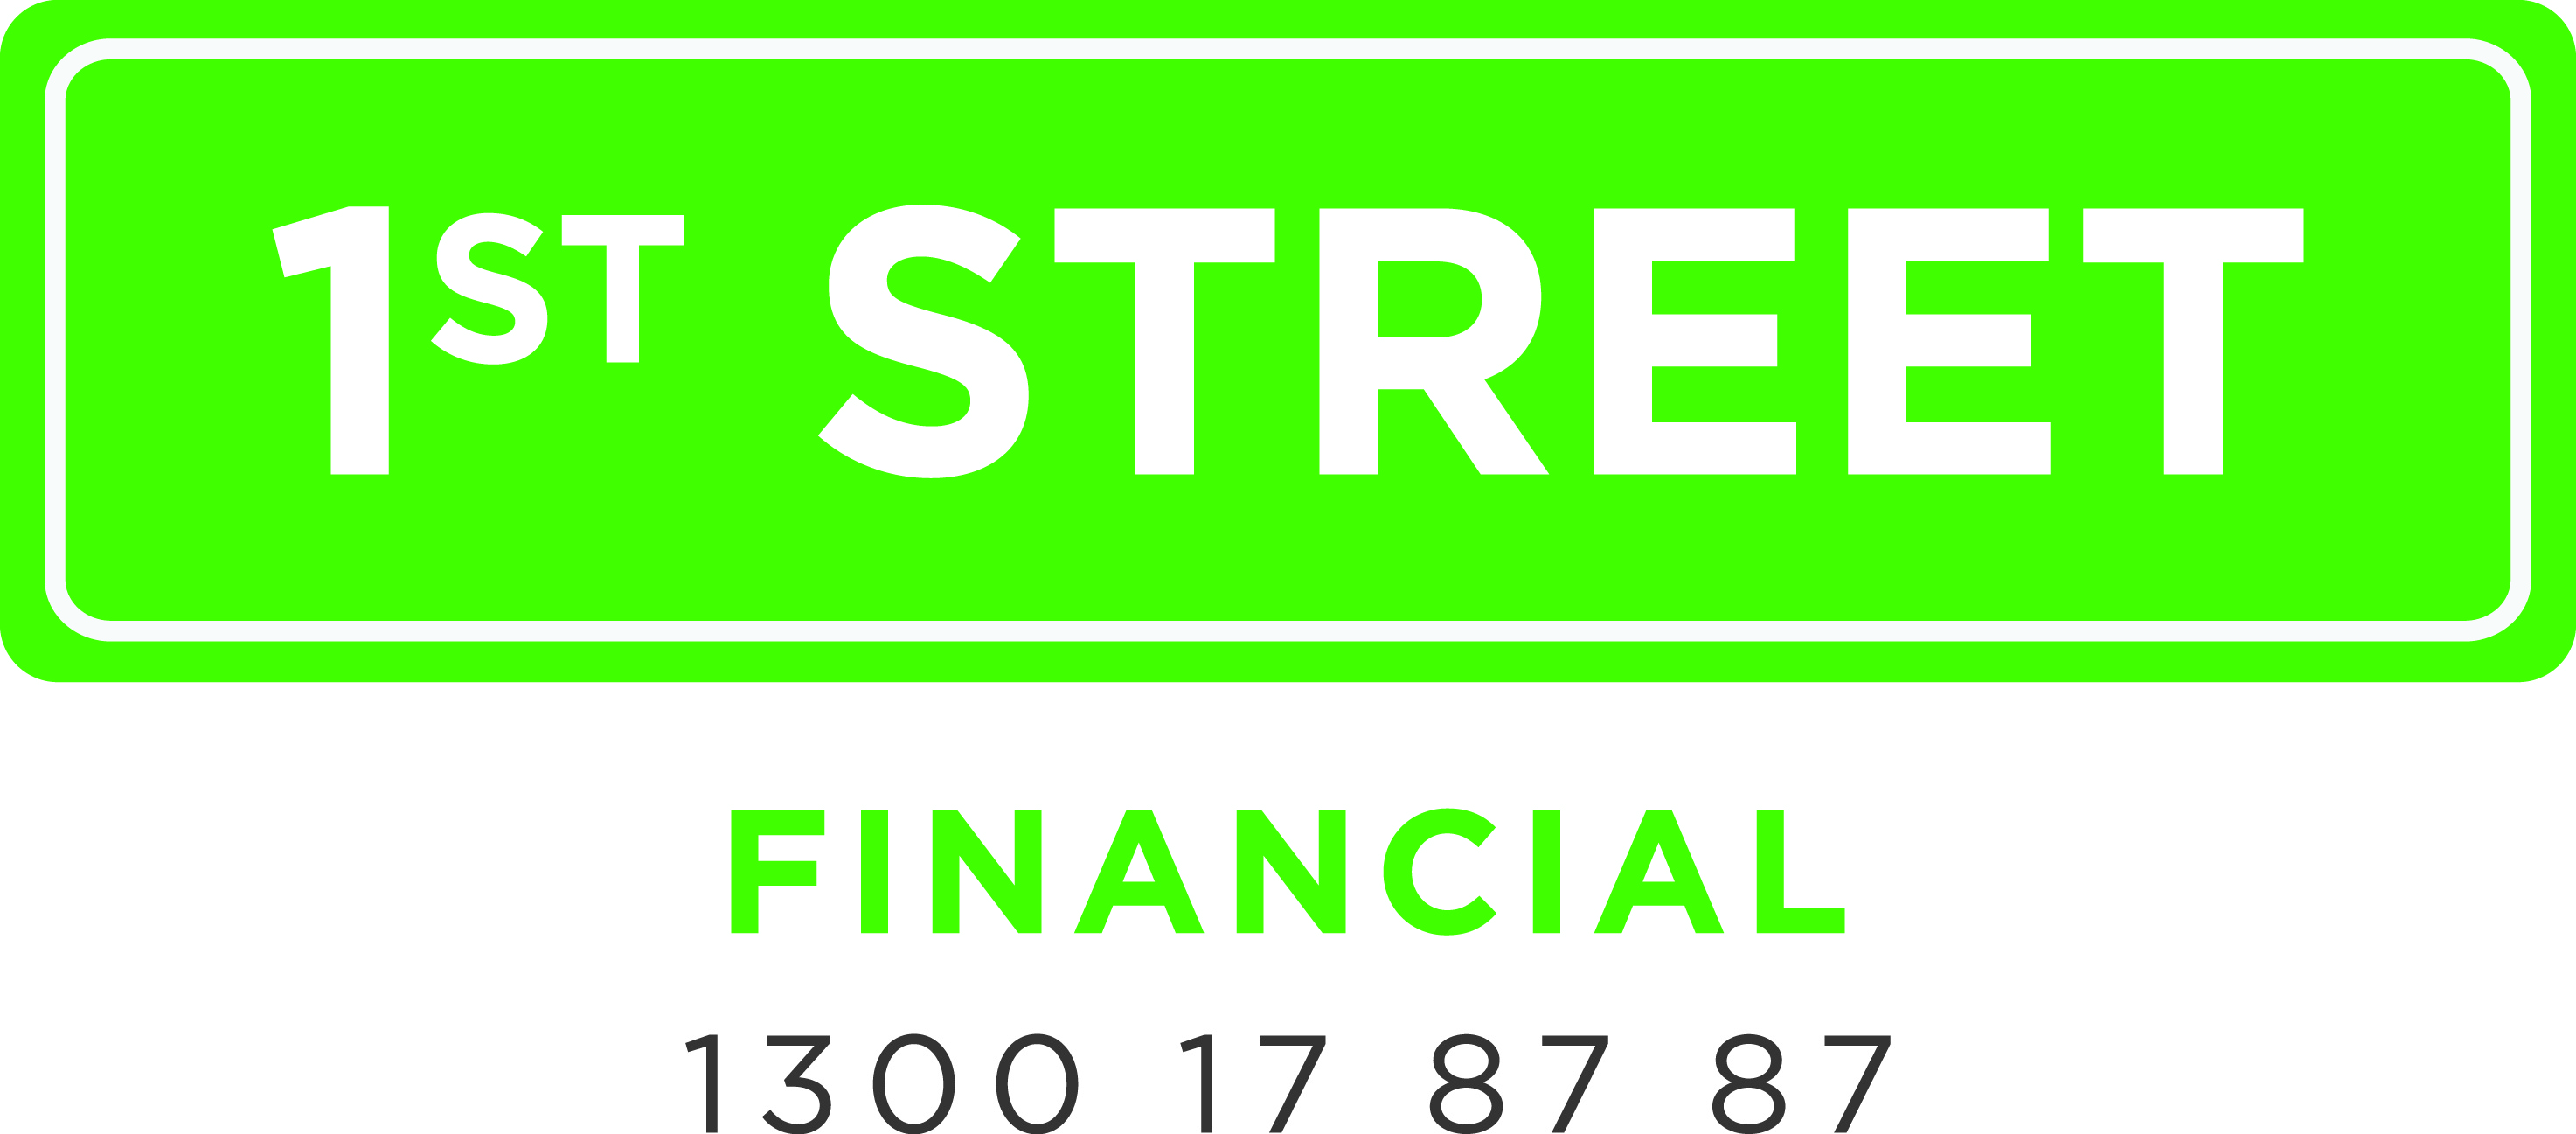 1st Street Financial